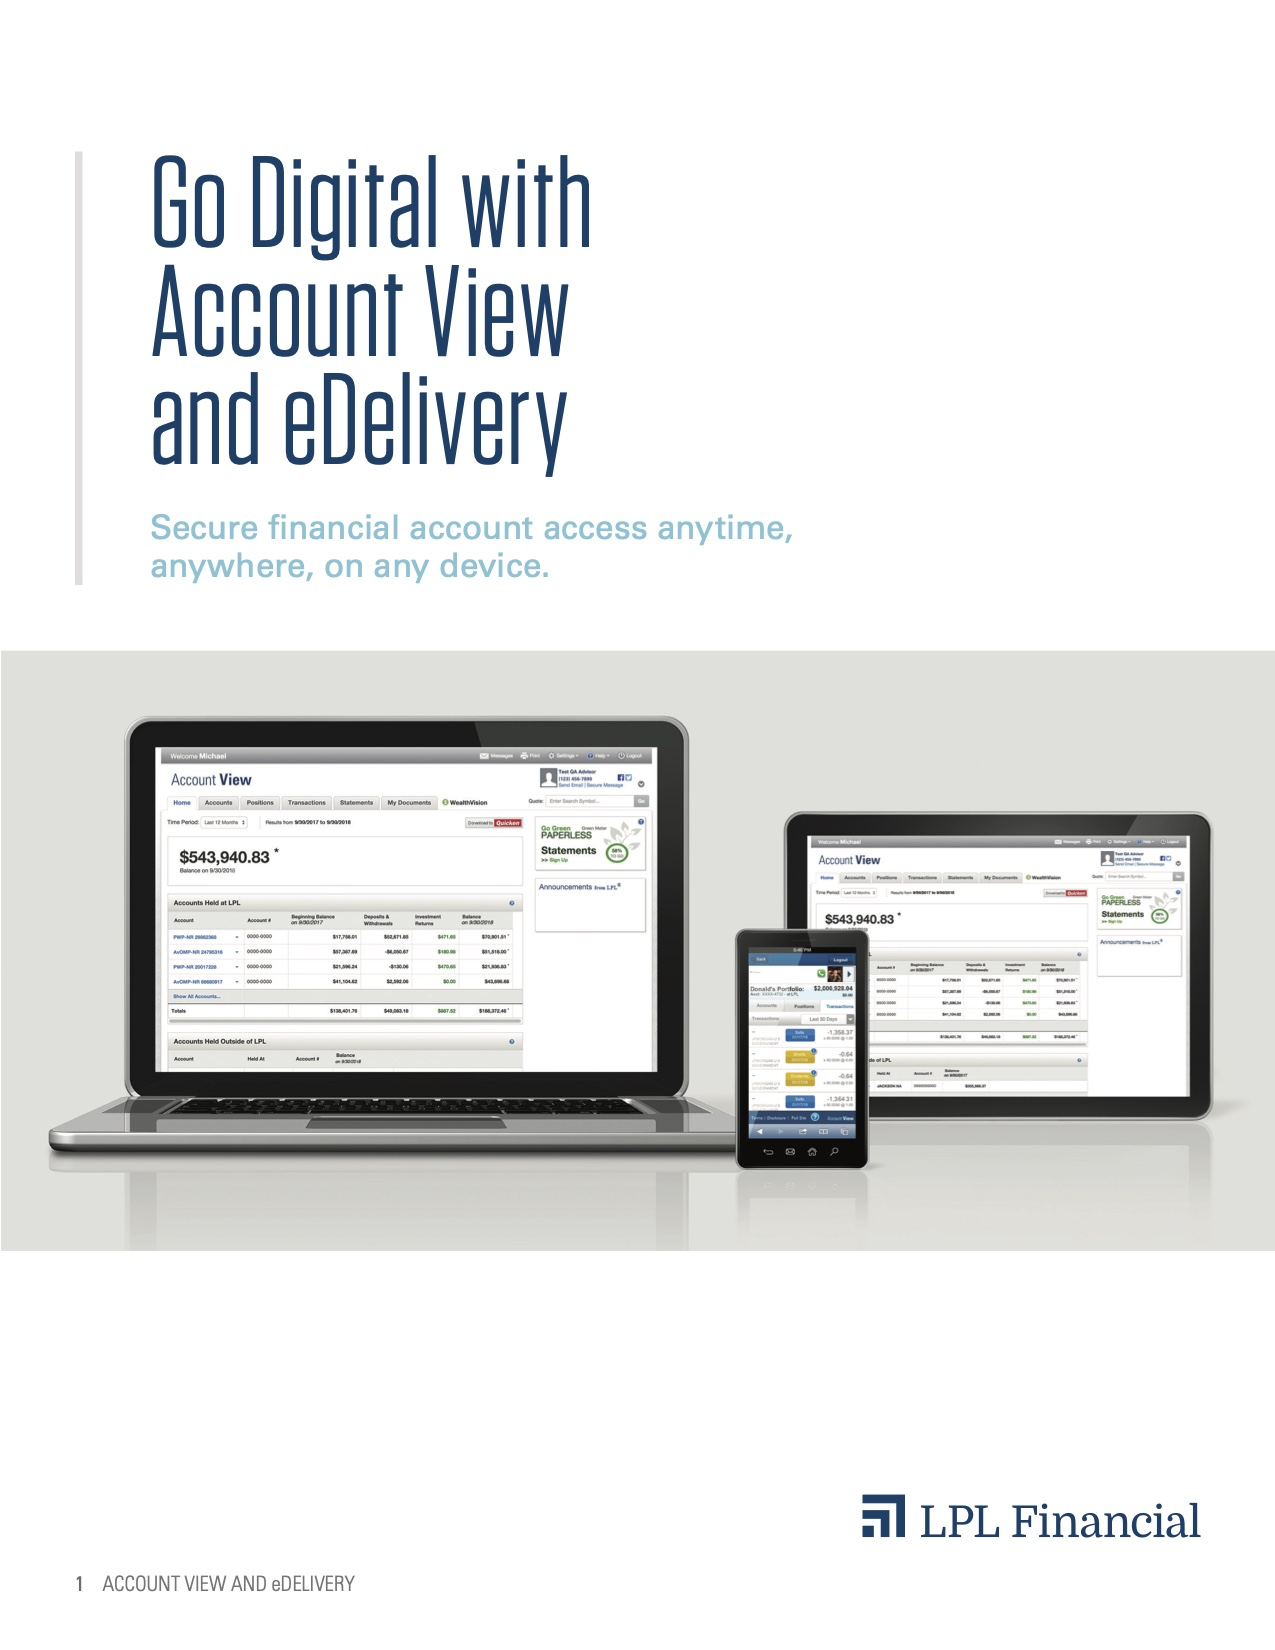 Download the Account View Brochure